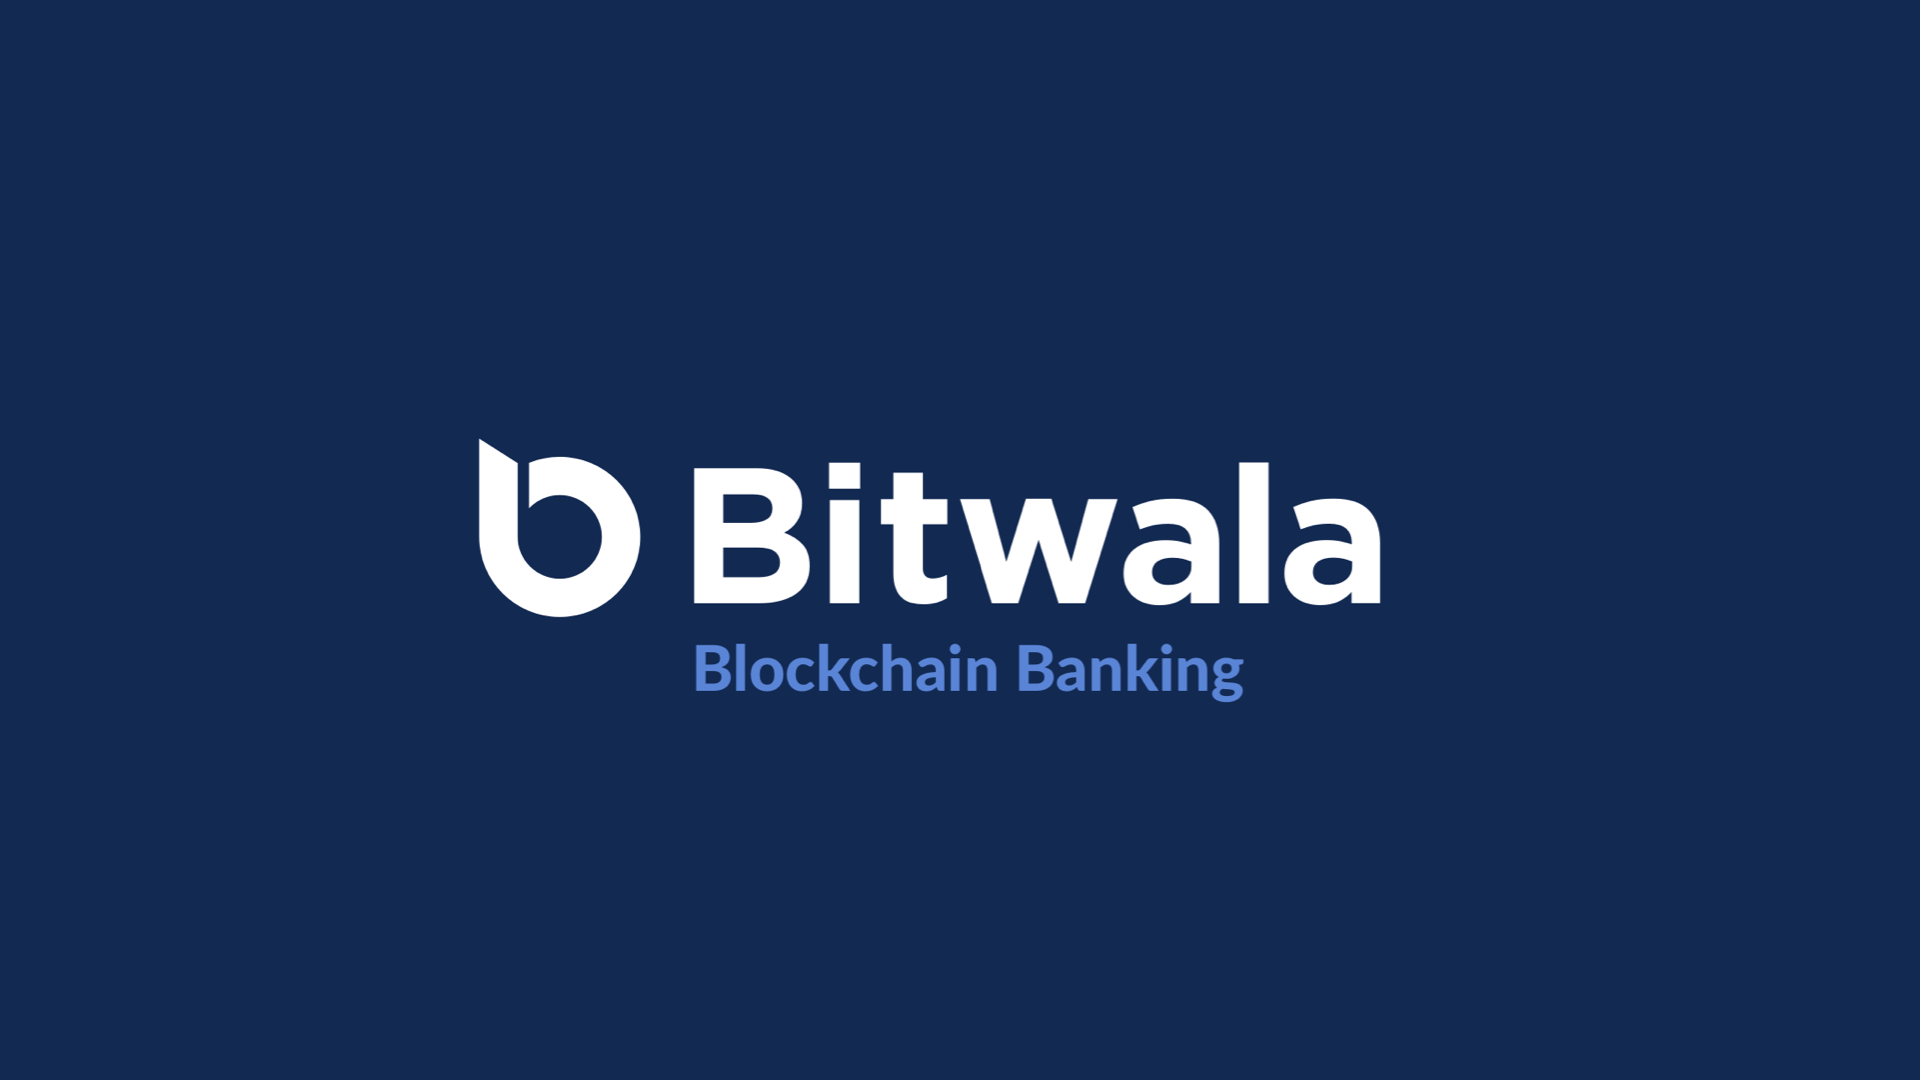 Bitwala Blockchain Bank - Campus Presentation